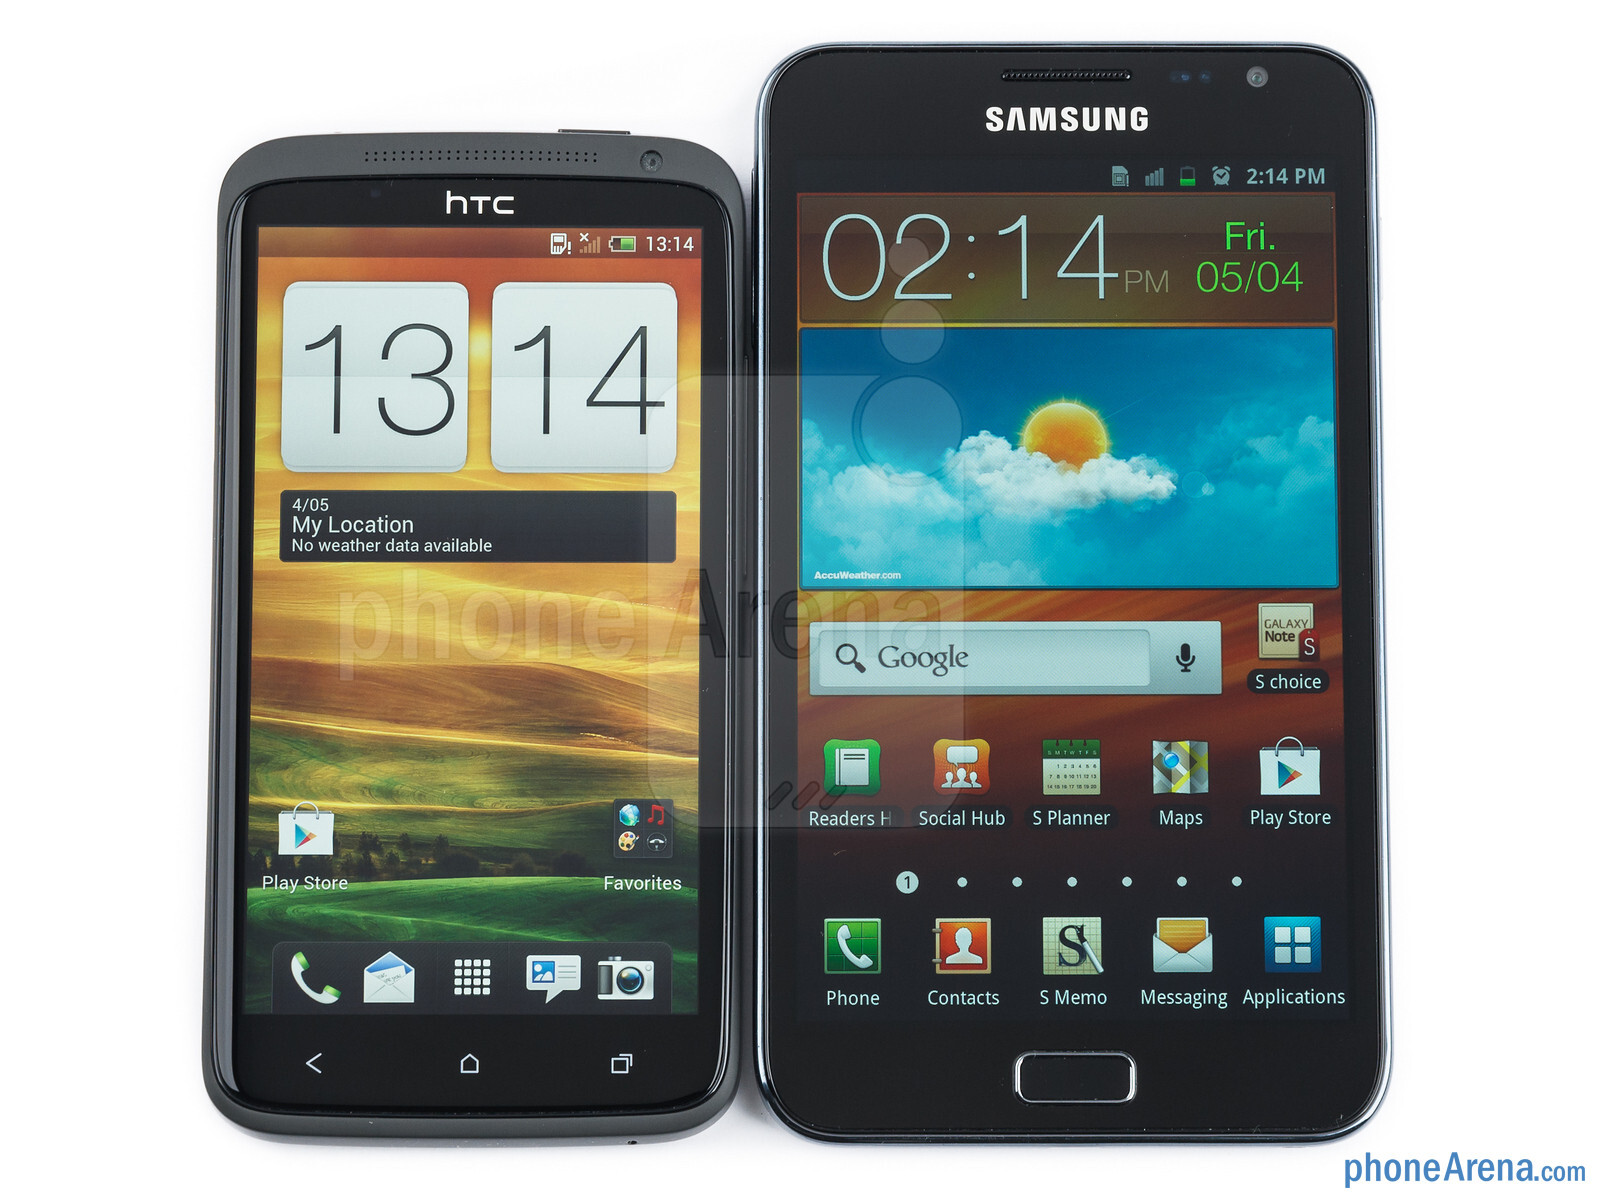 Htc One x vs Samsung Galaxy